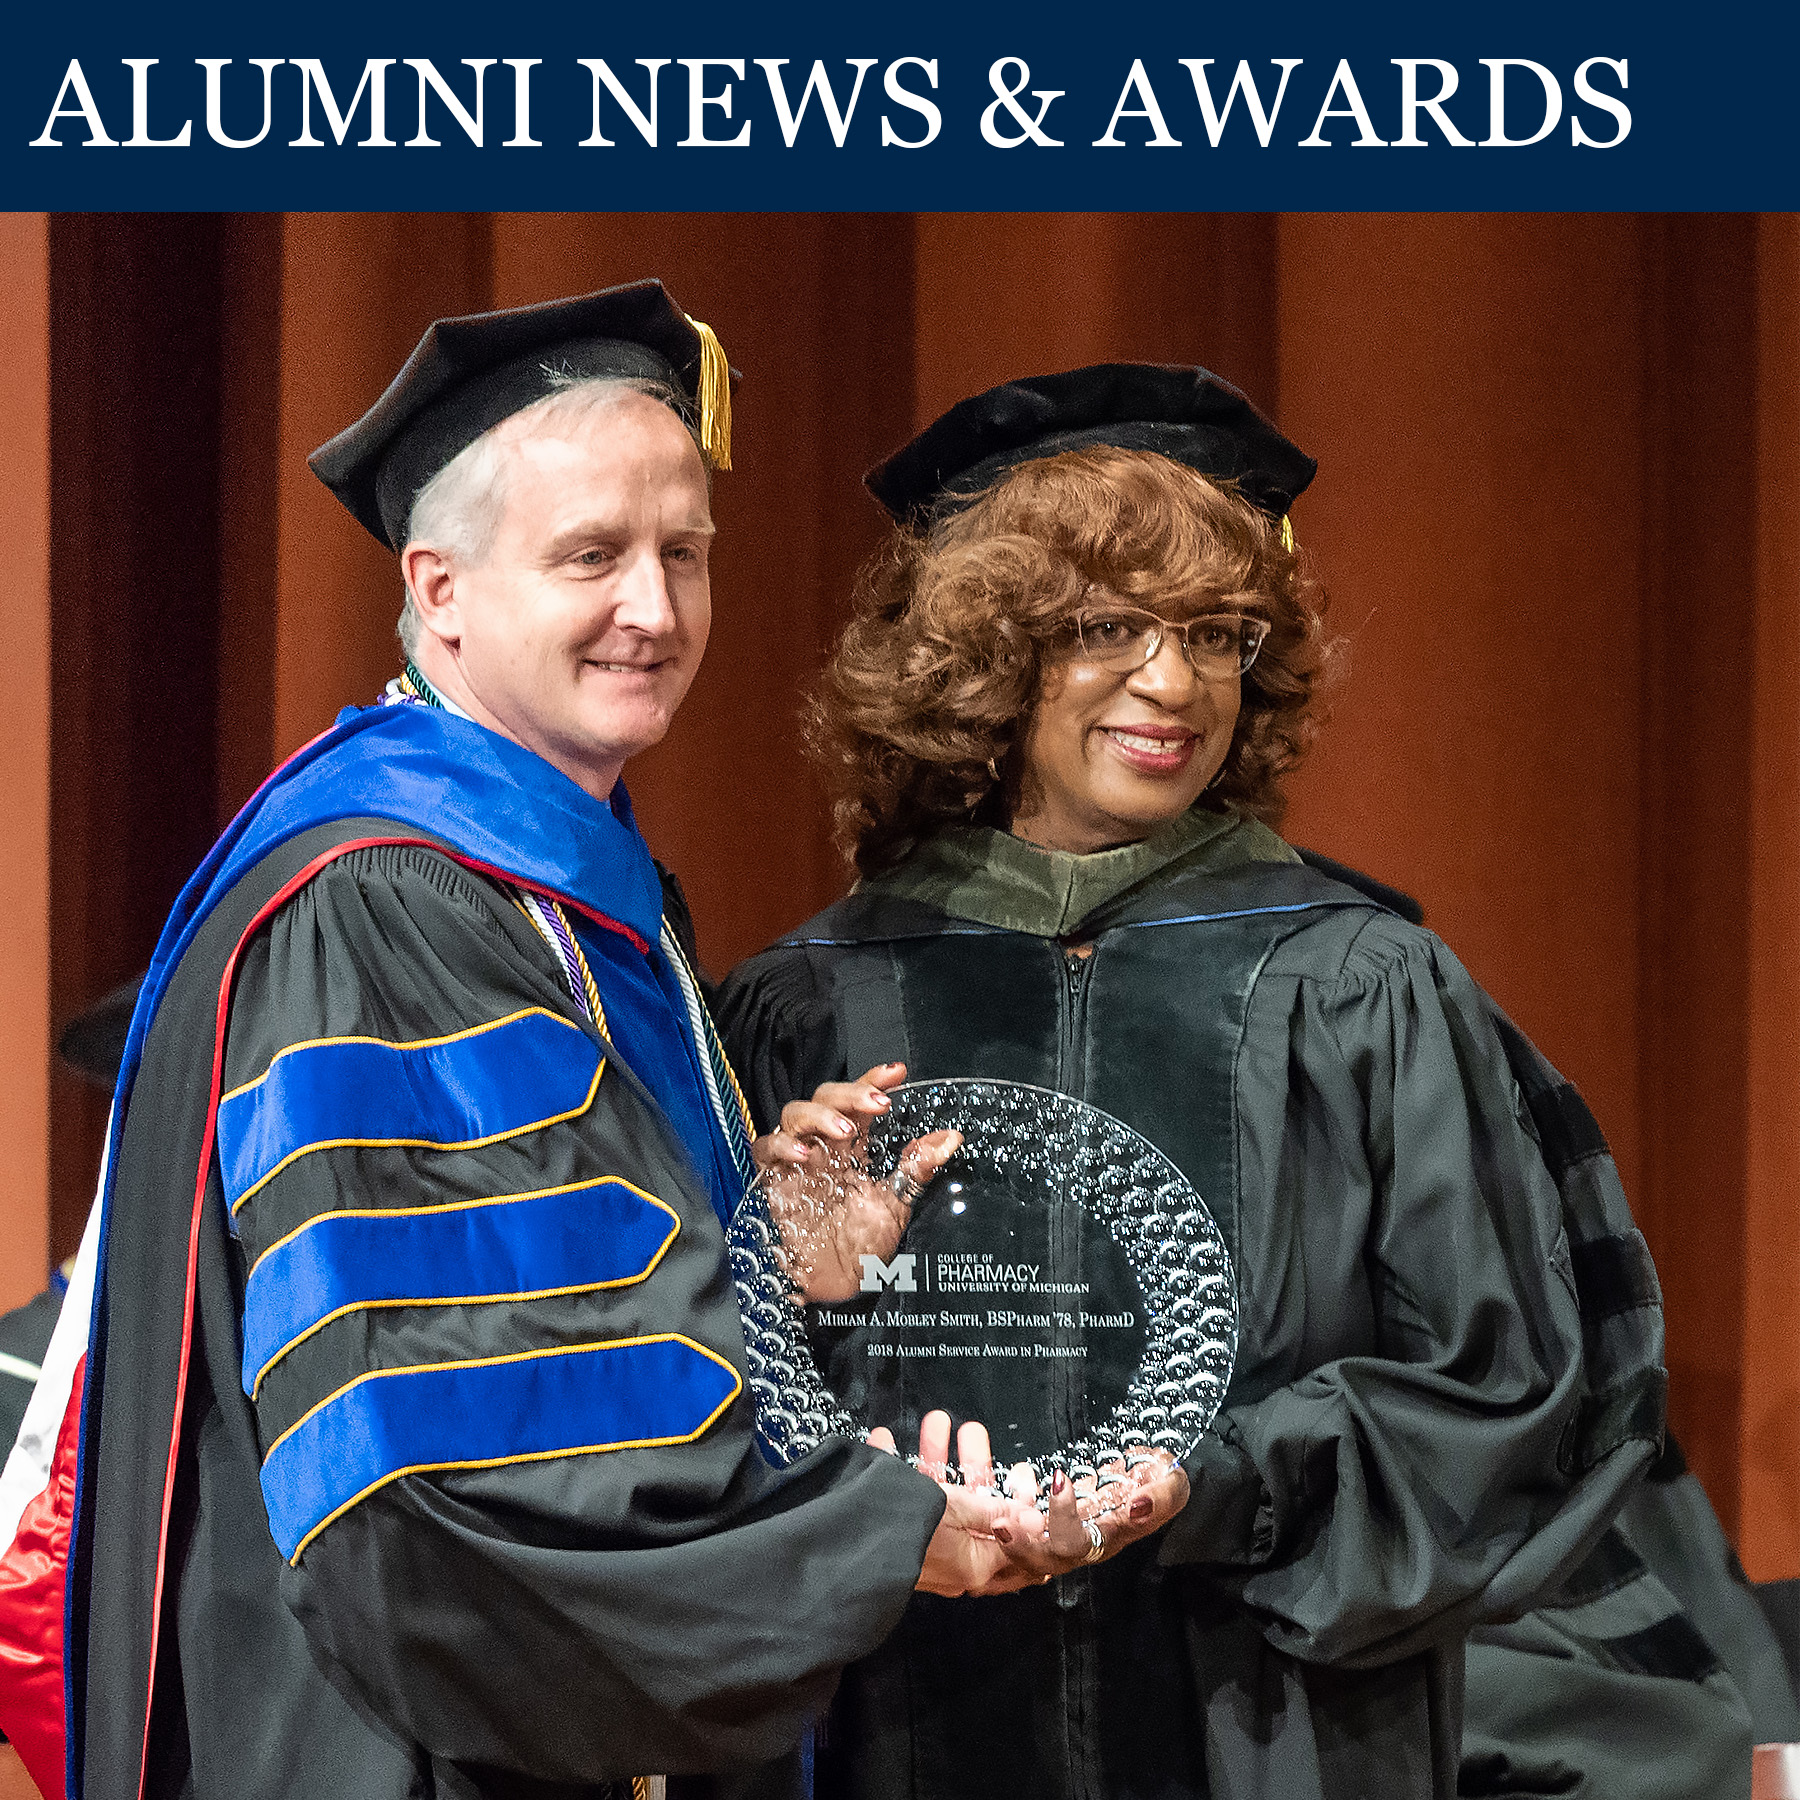 Alumni News and Awards